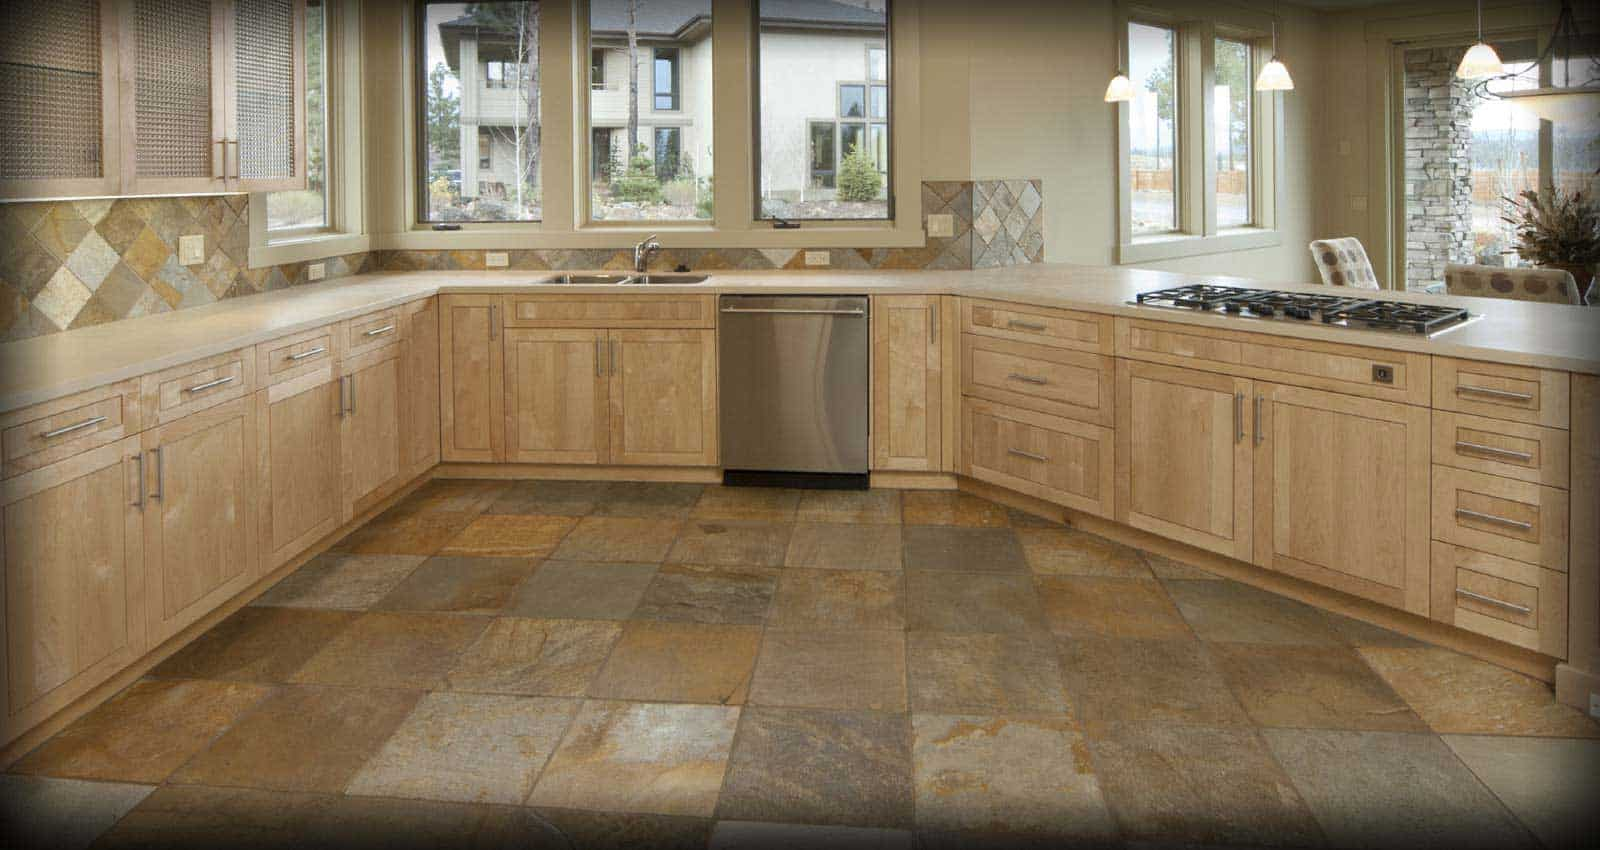 Tile Flooring Design – Contemporary Tile Design Ideas From Around on 12 x 18 tile patterns, 18x18 travertine tile shower, 18x18 tile brick layout, 12x24 tile patterns, 18x18 brick pattern, tile layout patterns, 20x20 tile patterns, 18x18 concrete tile patterns, 12 x 12 ceramic tile patterns, 18x18 floor tile grout lines, 18x18 ceramic floor tile, 18x18 porcelain tile, 18x18 vinyl tile, 18 x 18 tile patterns, porcelain tile installation patterns, 18x18 and 12x12 tile patterns, 18x18 floor tile ideas,